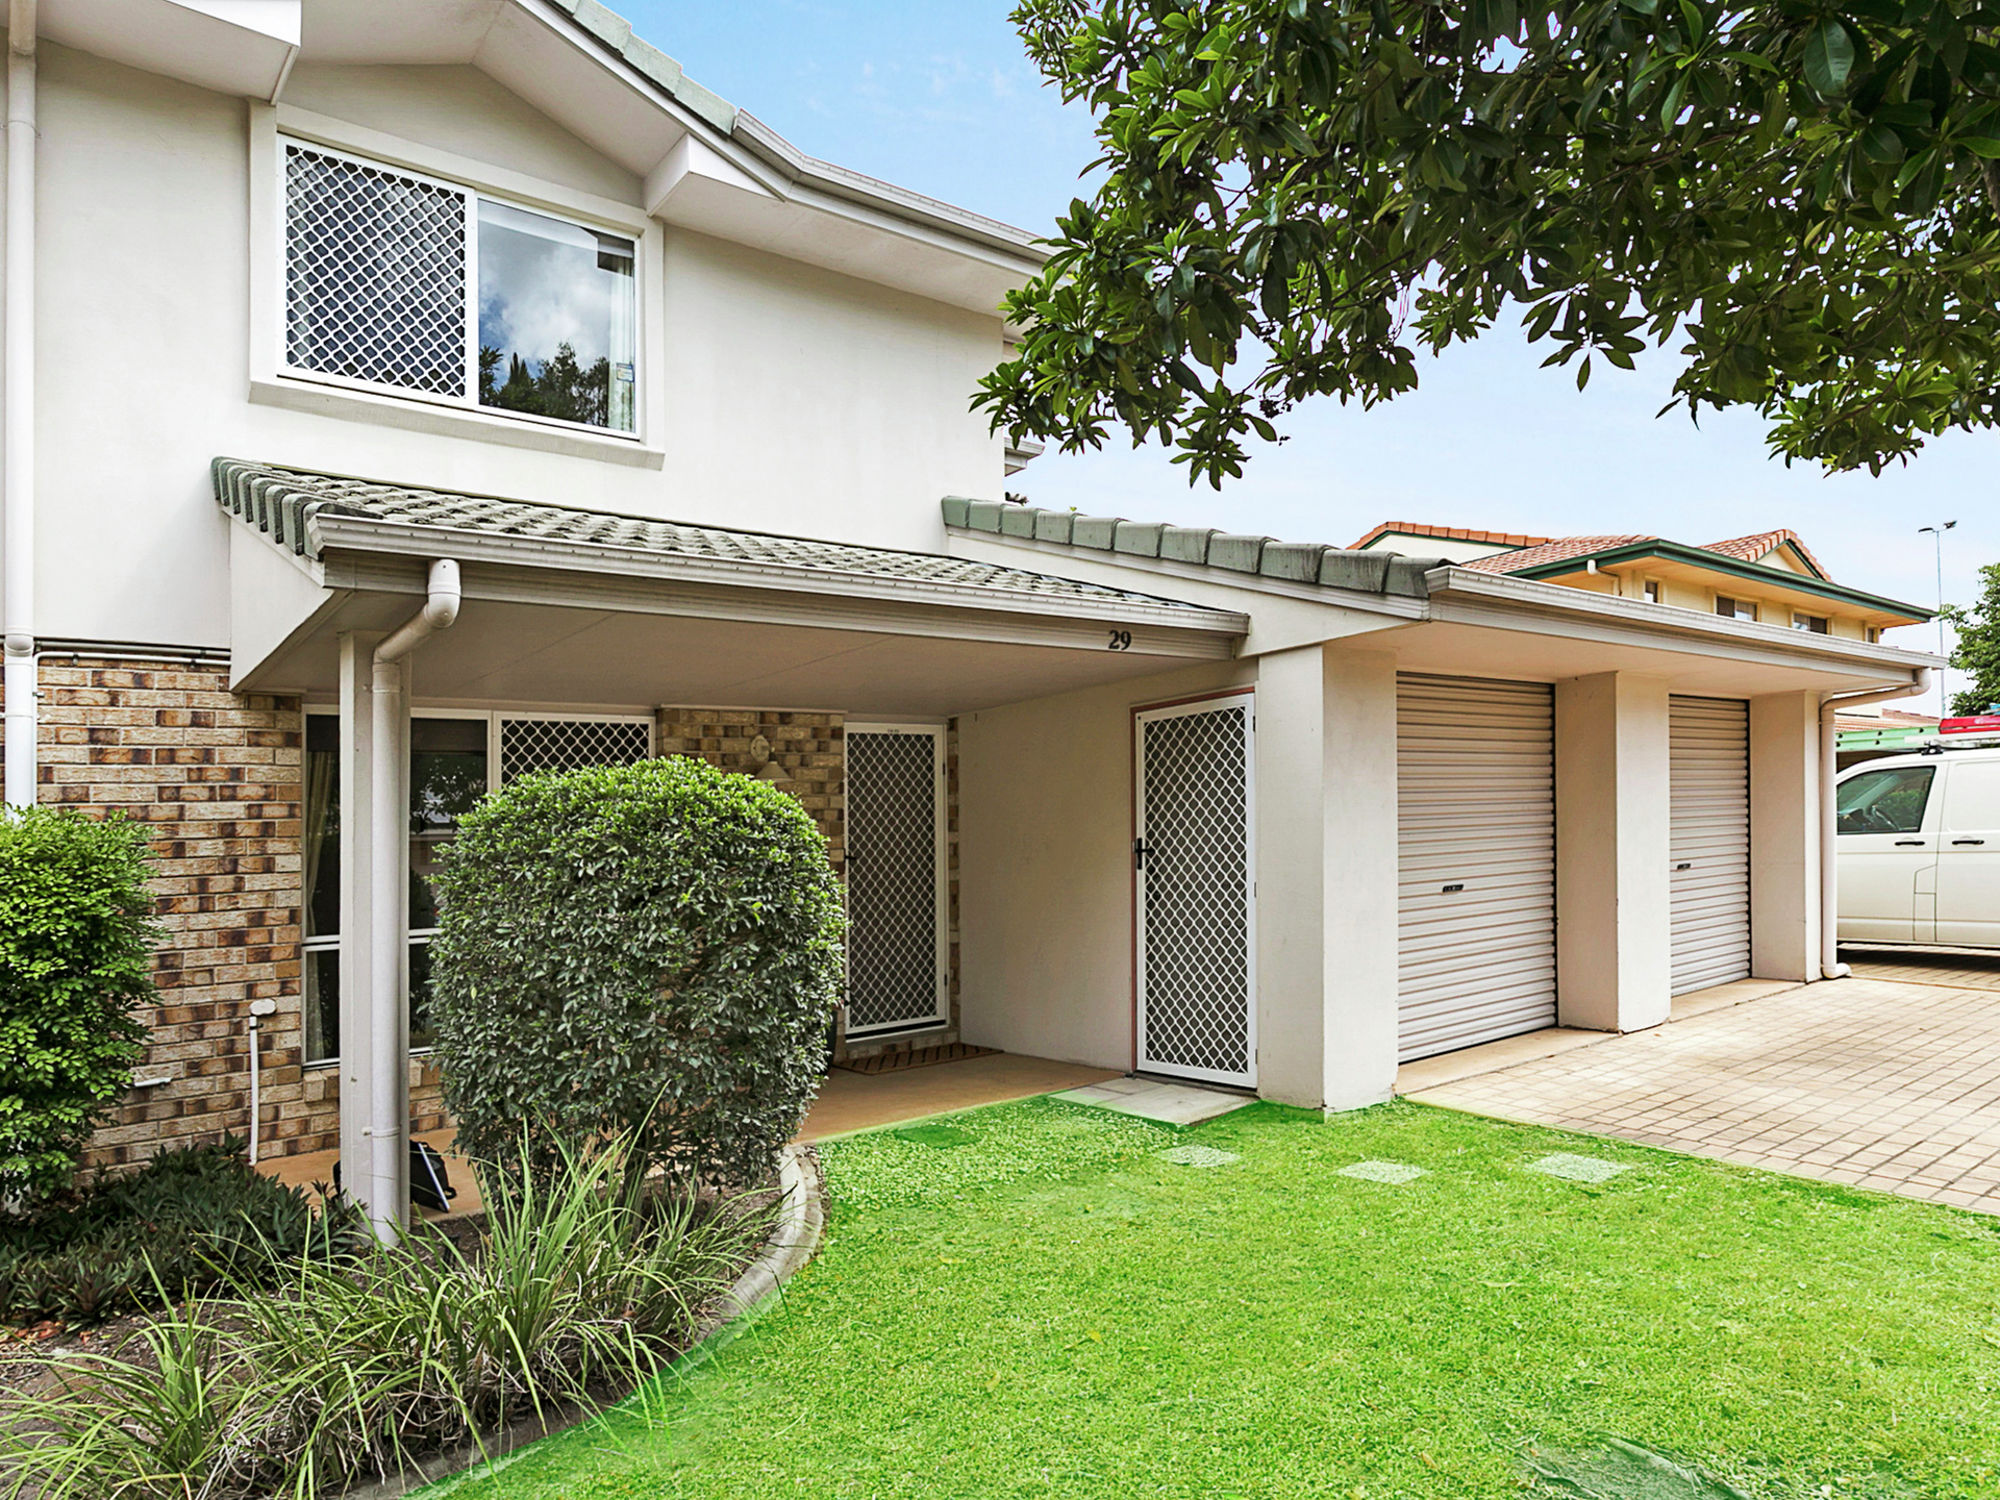 Property in Carina - Sold for $450,000